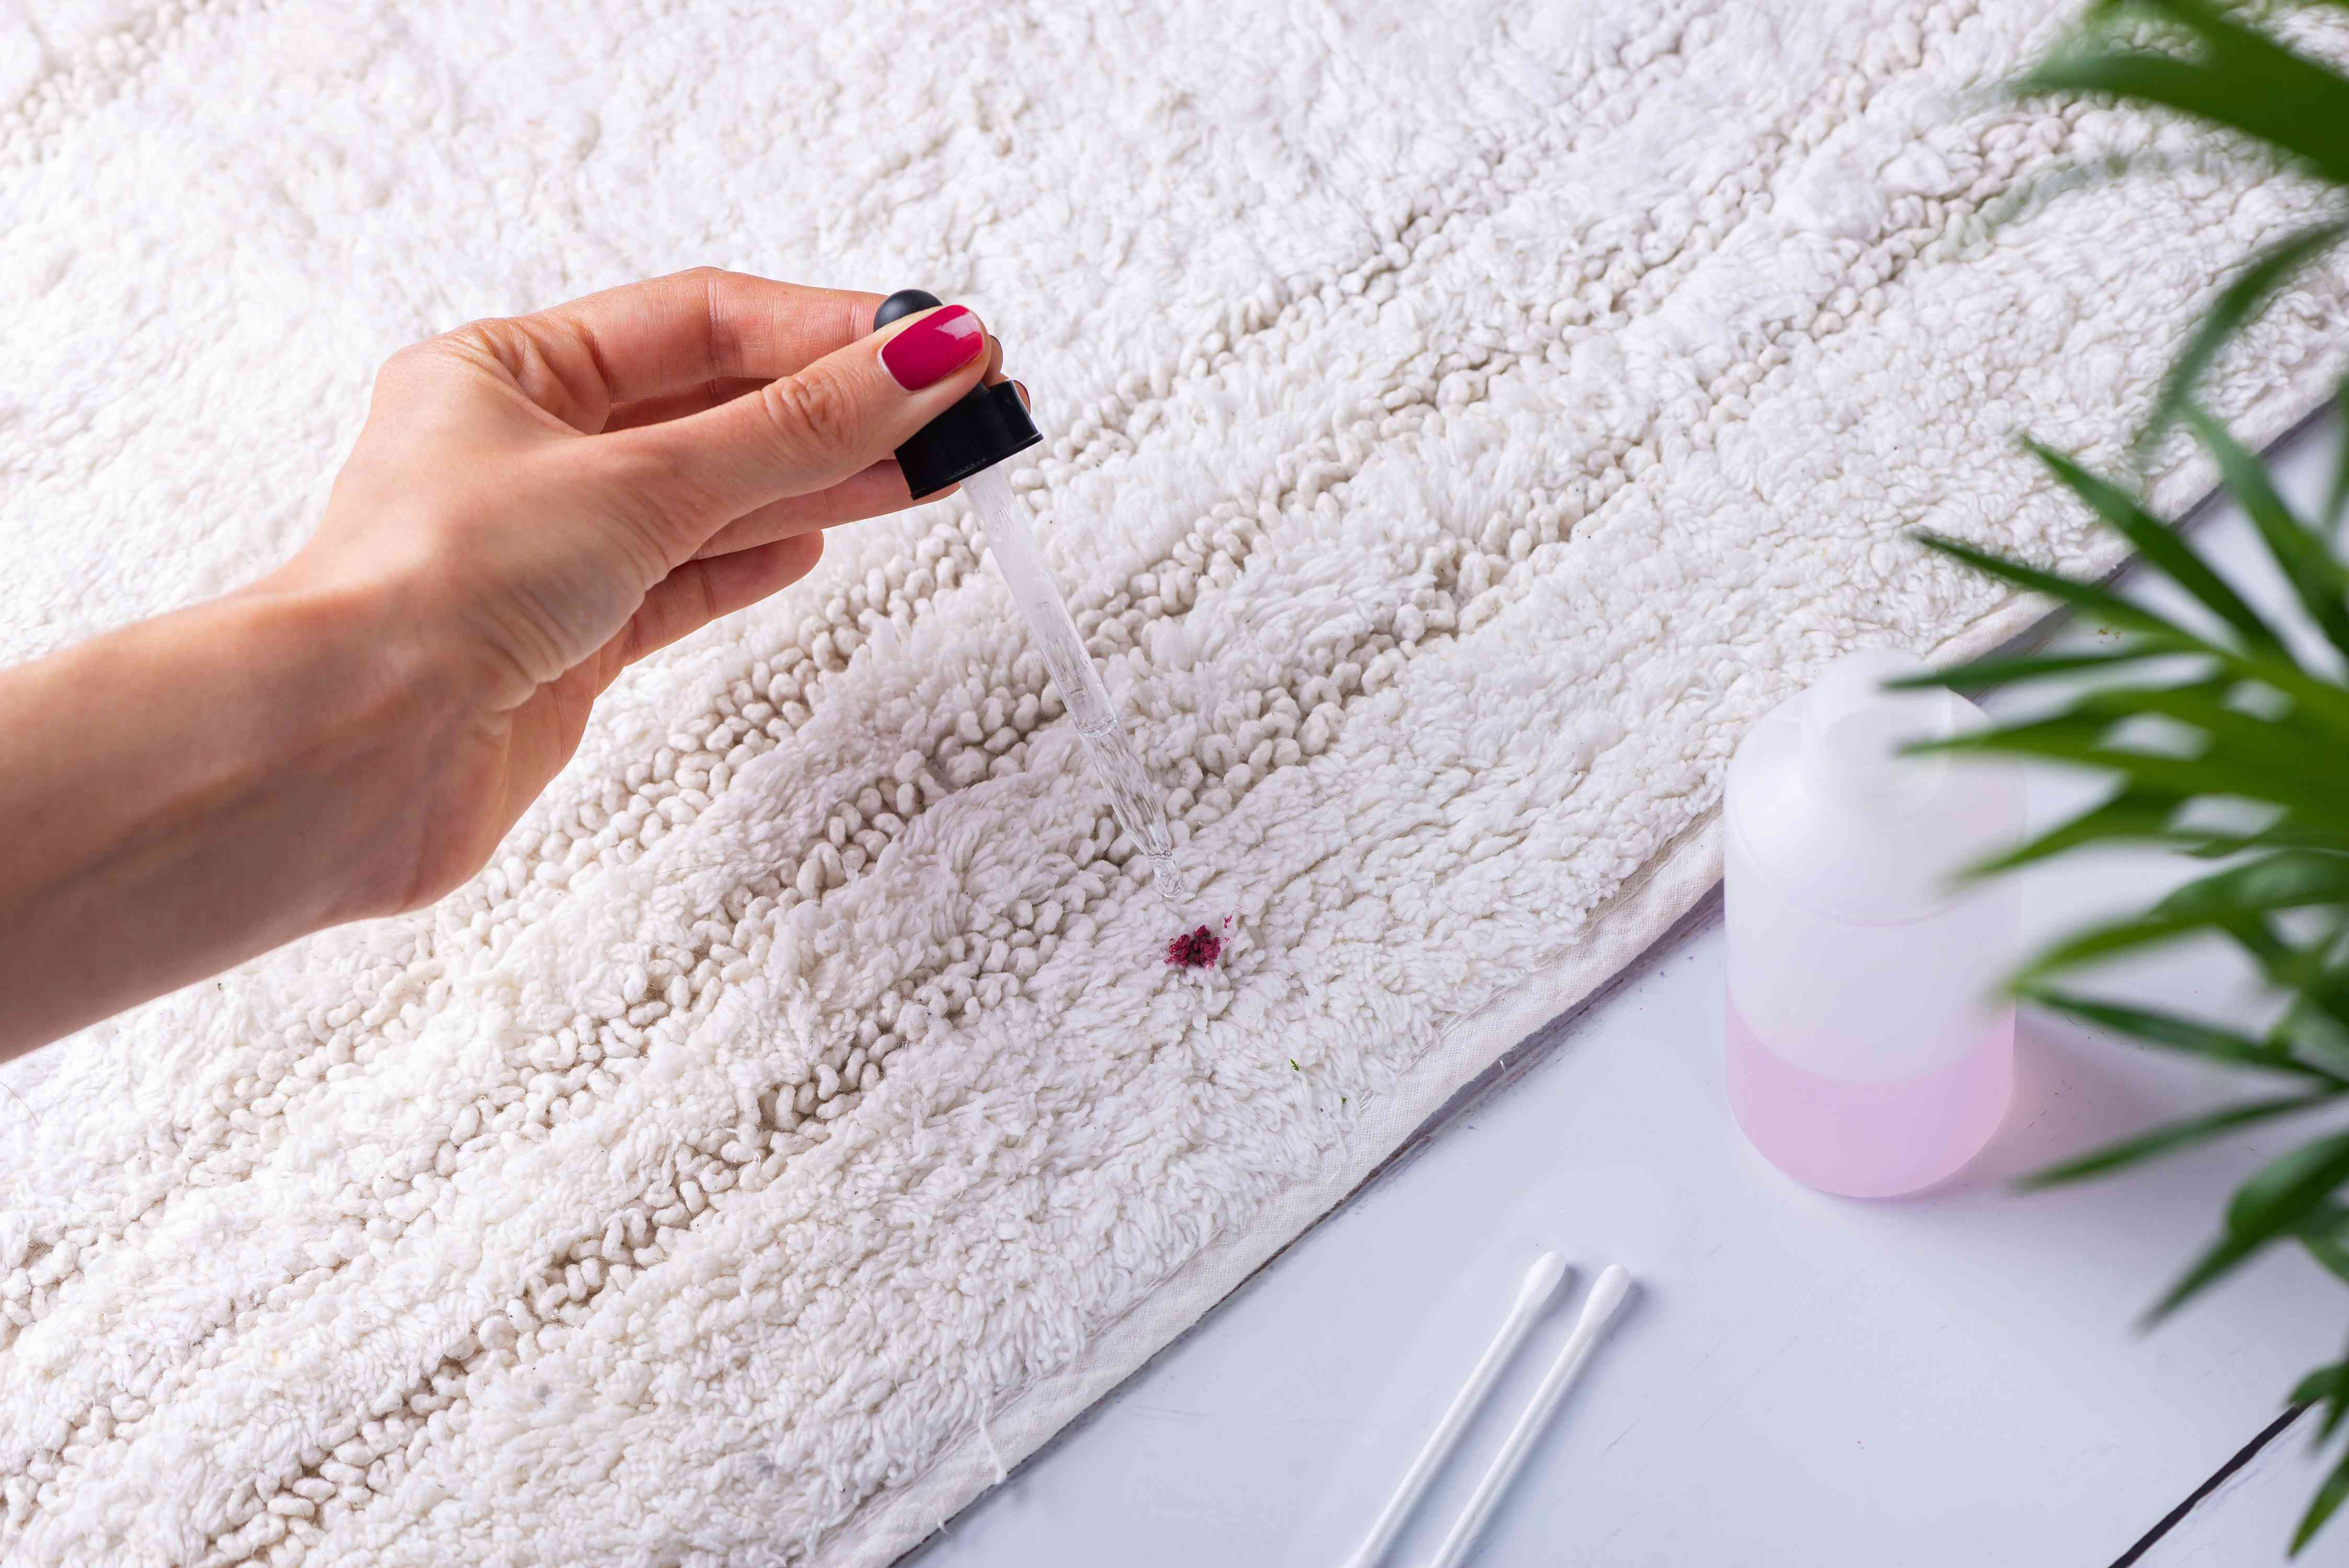 applying acetone to the carpet